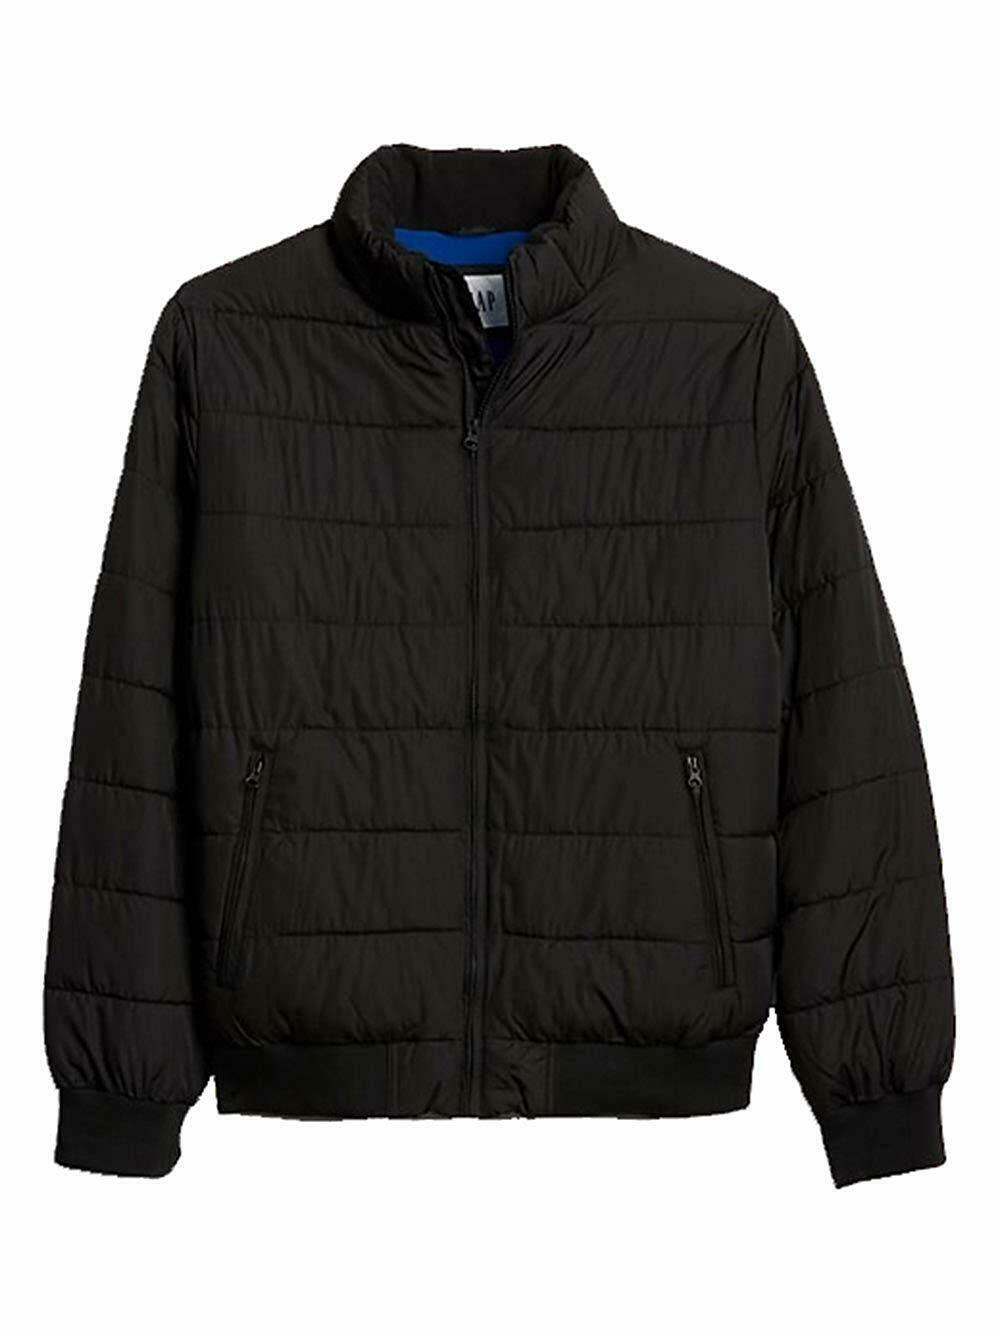 Primary image for Gap Mens Solid Black Full Zip Warmest Puffer Jacket Coat Sz L Large 7613-1M